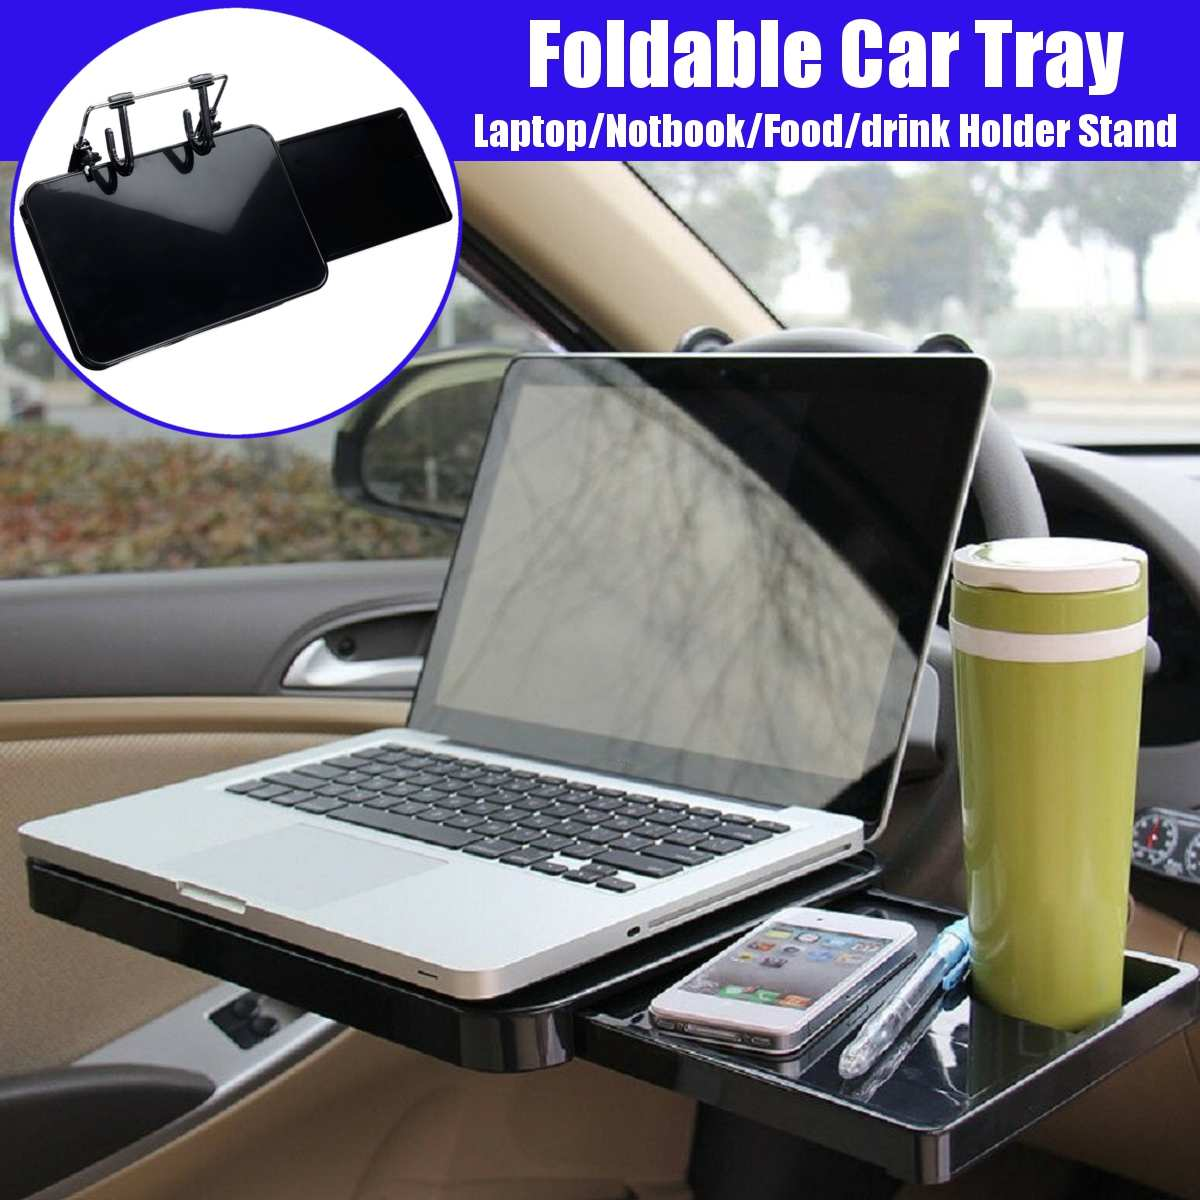 Car Steering Wheel Back Seat Tray Built-in Drawer Laptop Notebook Food Drink Holder Stand Car Cup Holder Dining Table